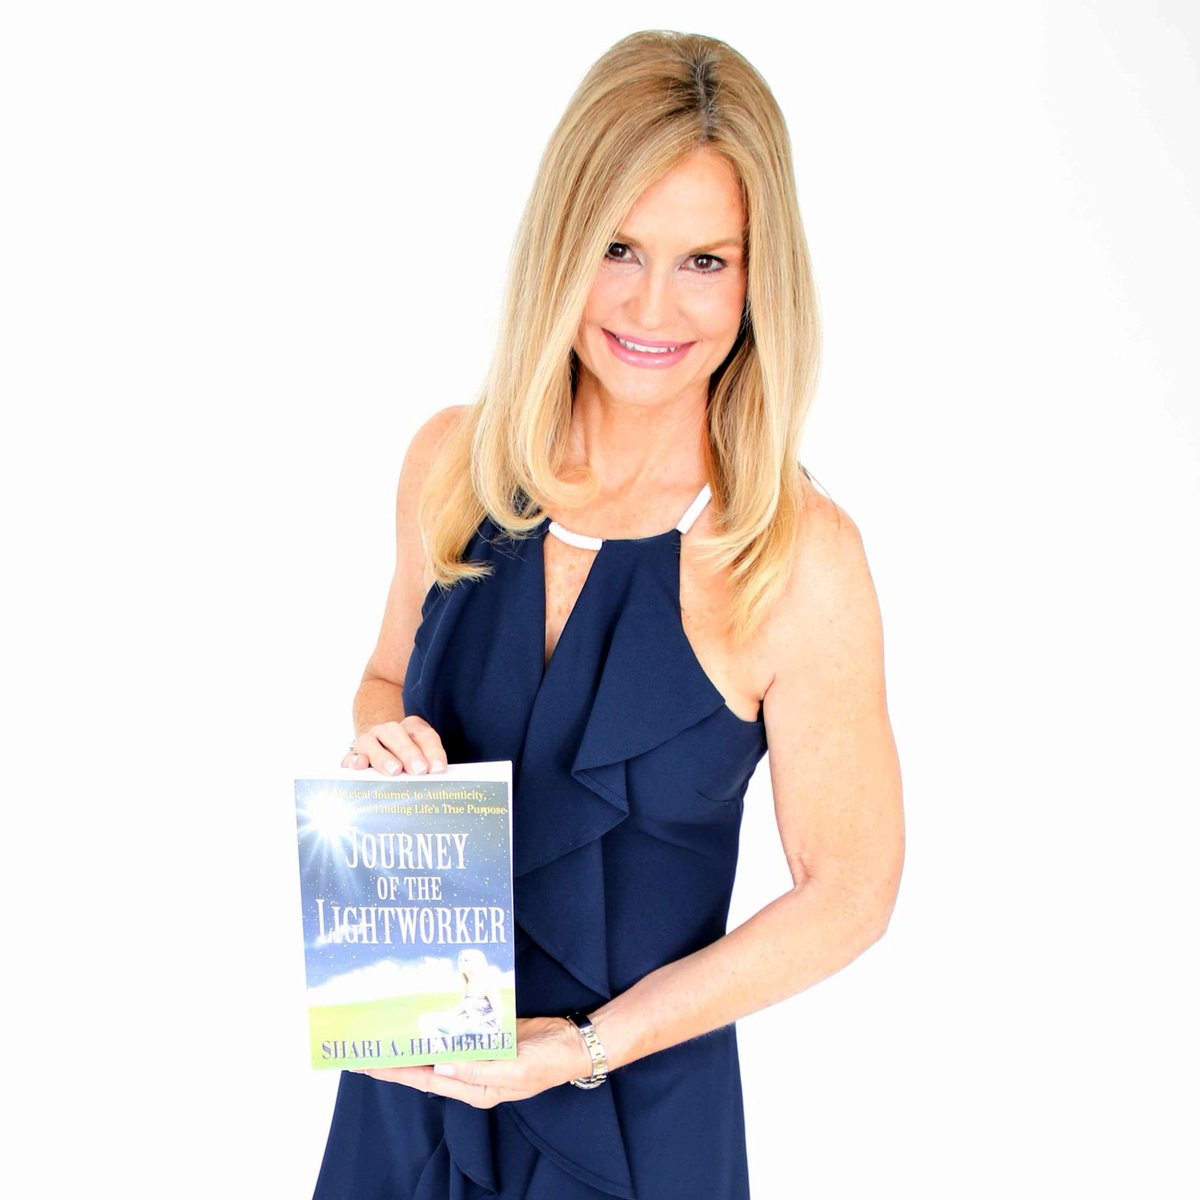 Thanks to my AMAZING friends who came out Tuesday night to celebrate the launch of my book, Journey of the Lightworker! I am so blessed to have each and every one of you in my life. XO Shari #journeyofthelightworker #book #lightworker #lightworkers #party #love #friends